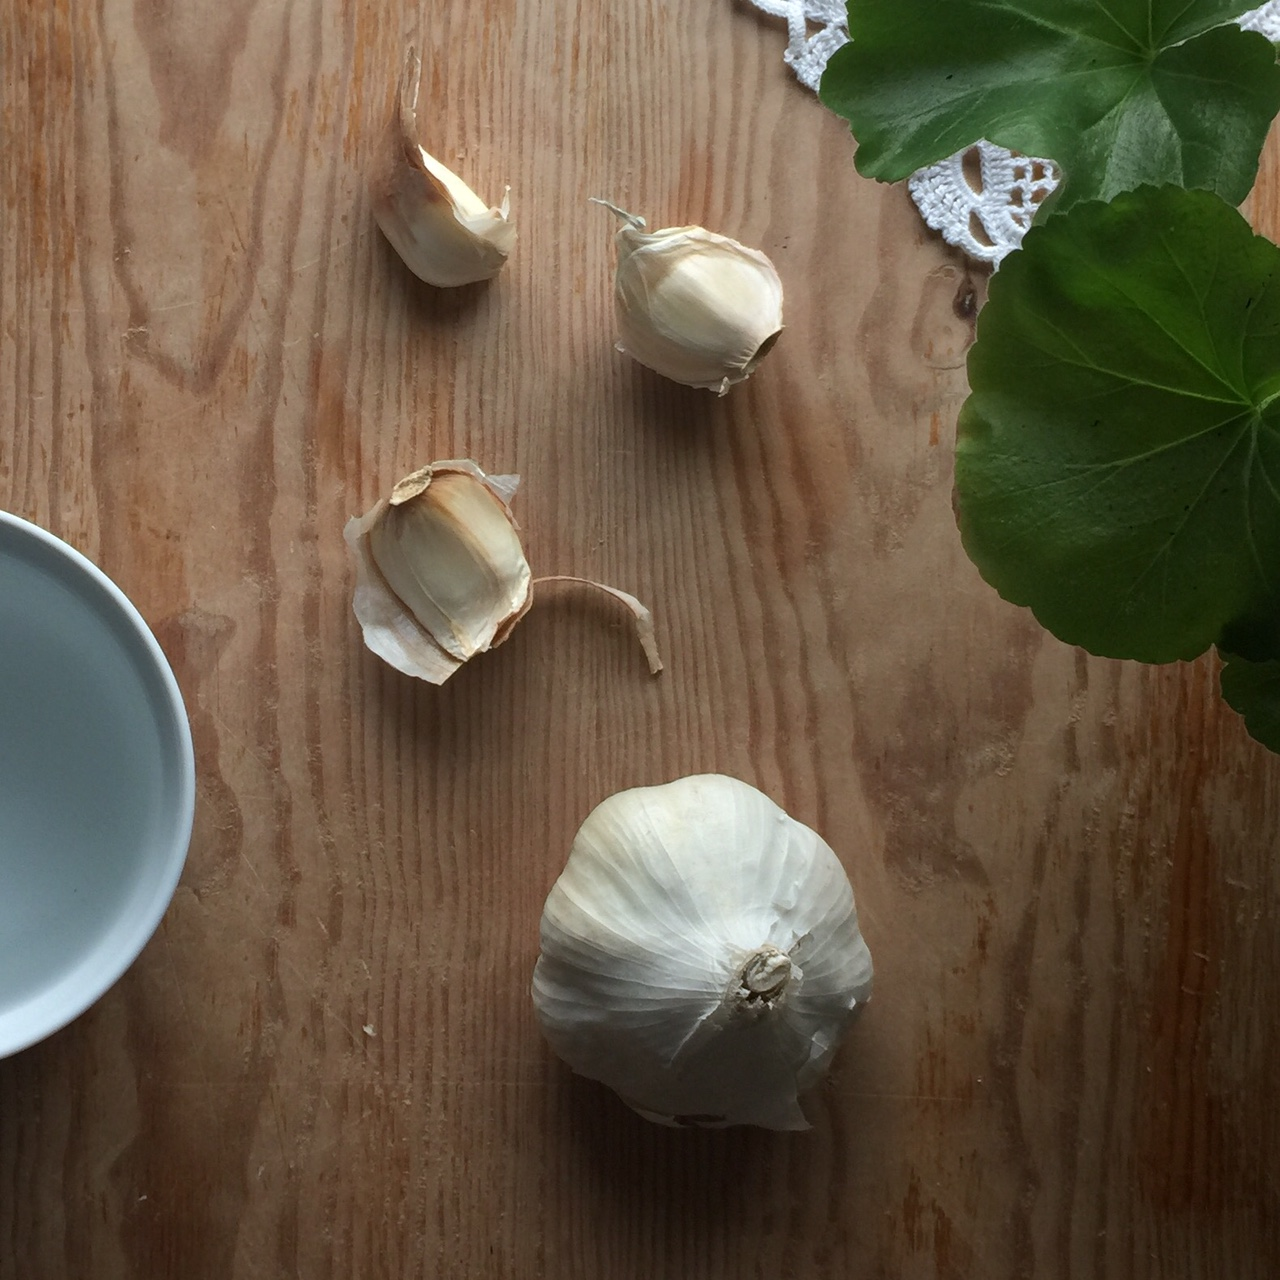 helse, hvitløk, helse hvitløk, sunt hvitløk, allicin, phytoncide, allicin garlic, phytoncide garlic, garlic benefits, hvitløk benefits, betennelsesdempende mat, inflammatory food,